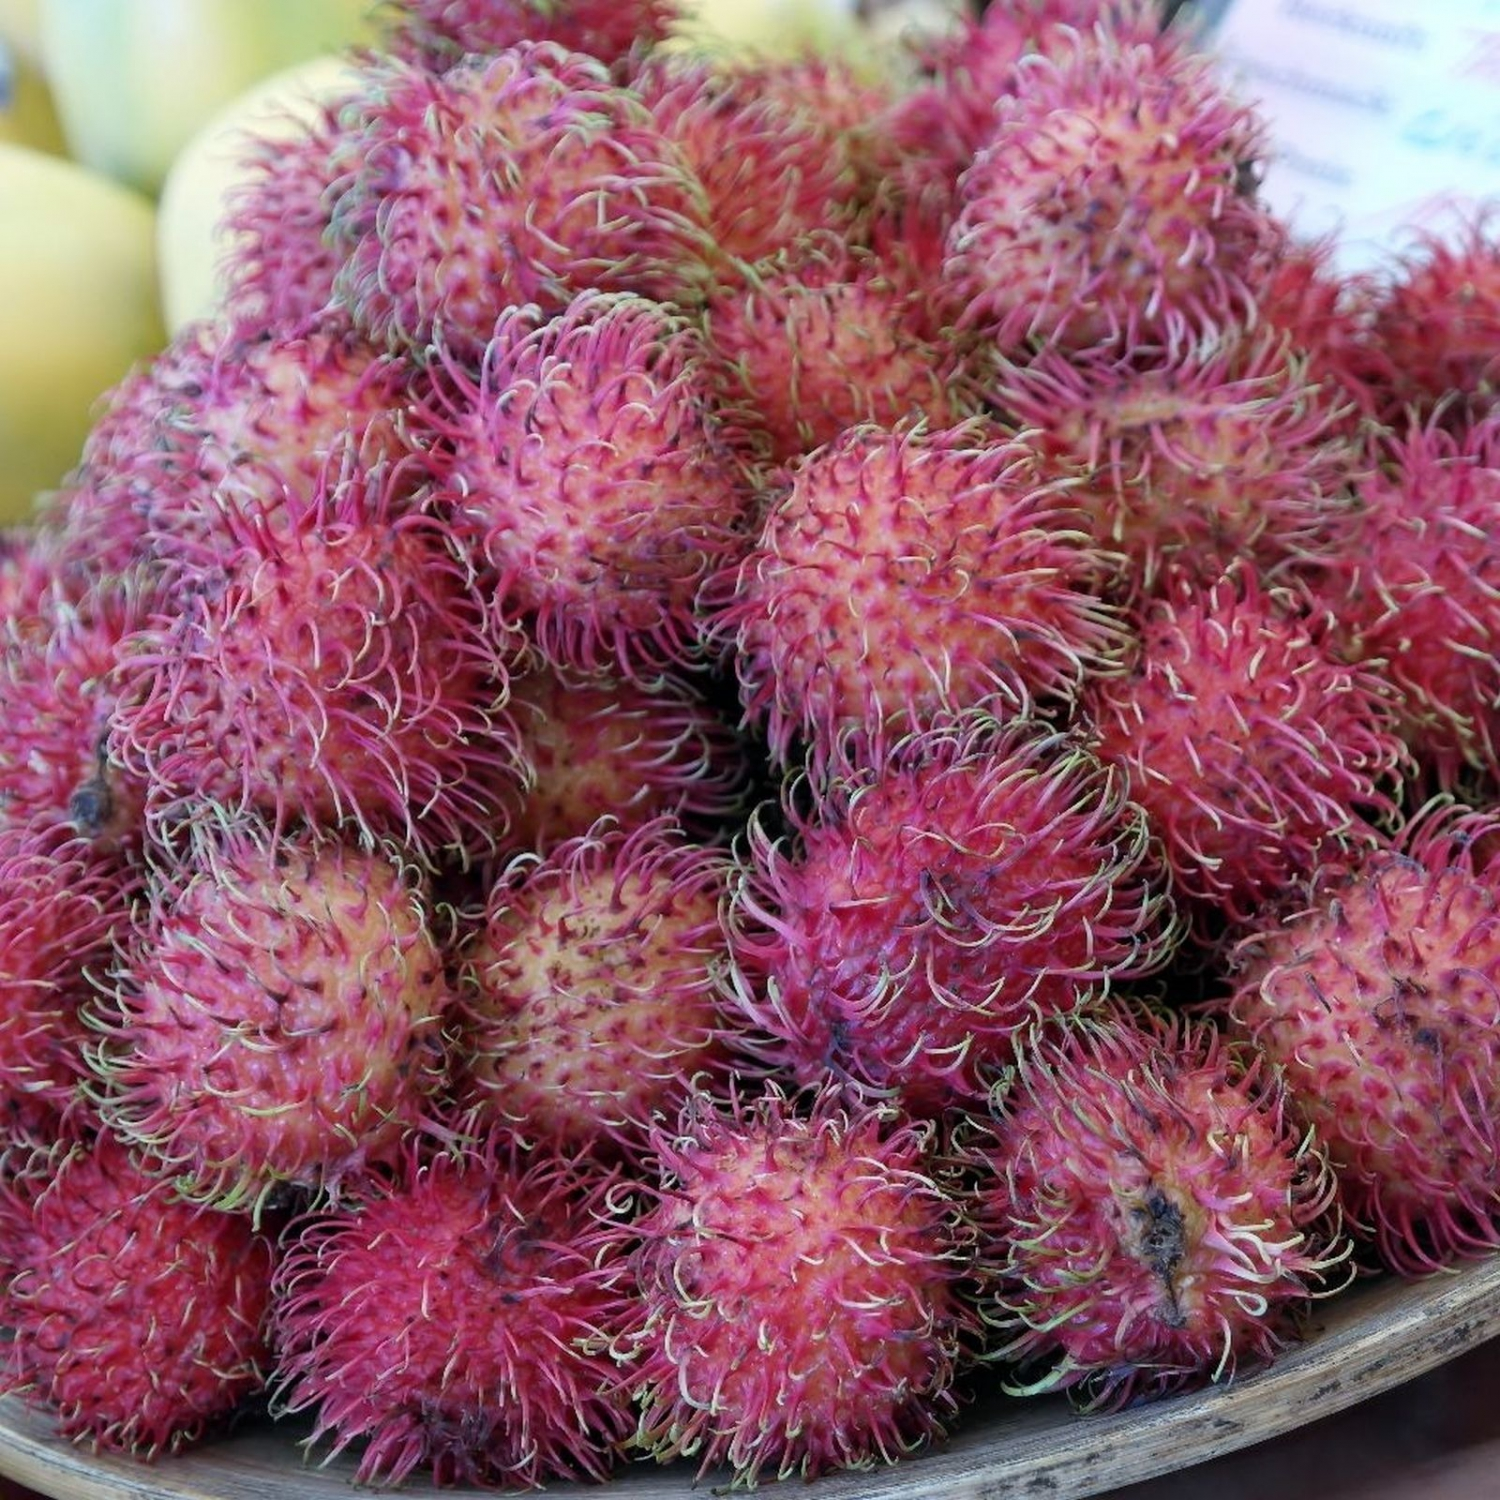 The rambutan is a spikky, red fruit, about the size of a golf ball